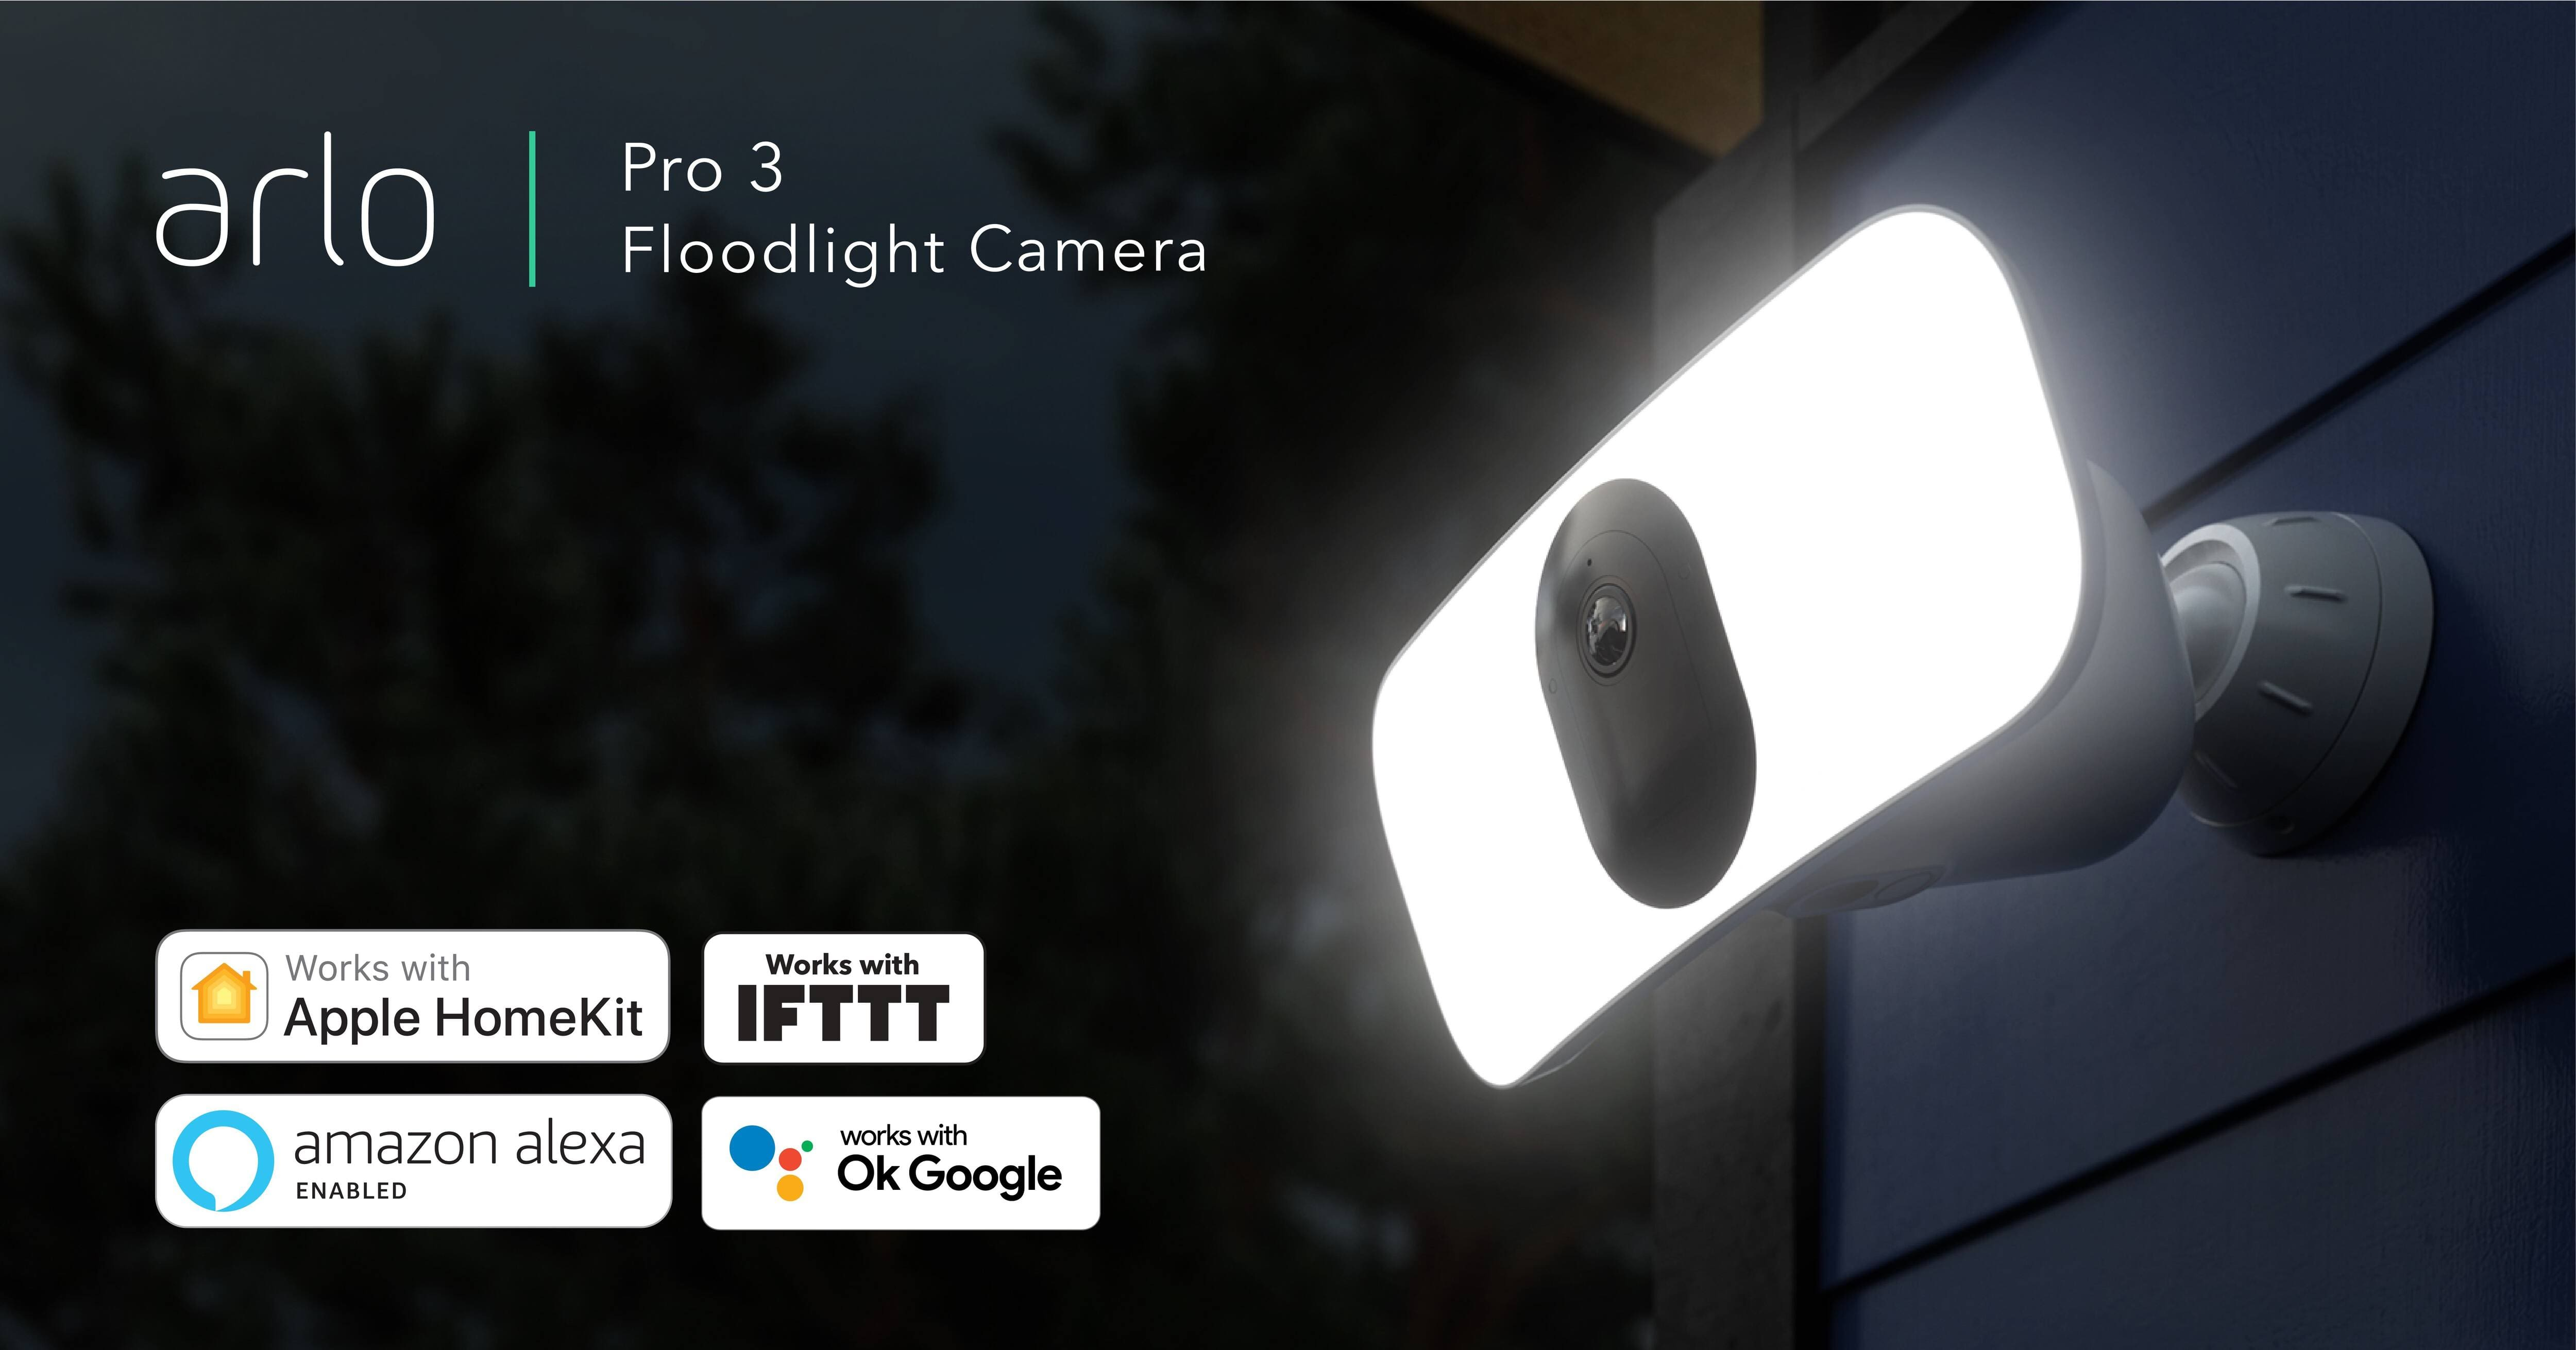 Arlo Pro 3 Indoor/Outdoor Wire-Free 2K HDR Floodlight Camera - $199.99 + Free Shipping